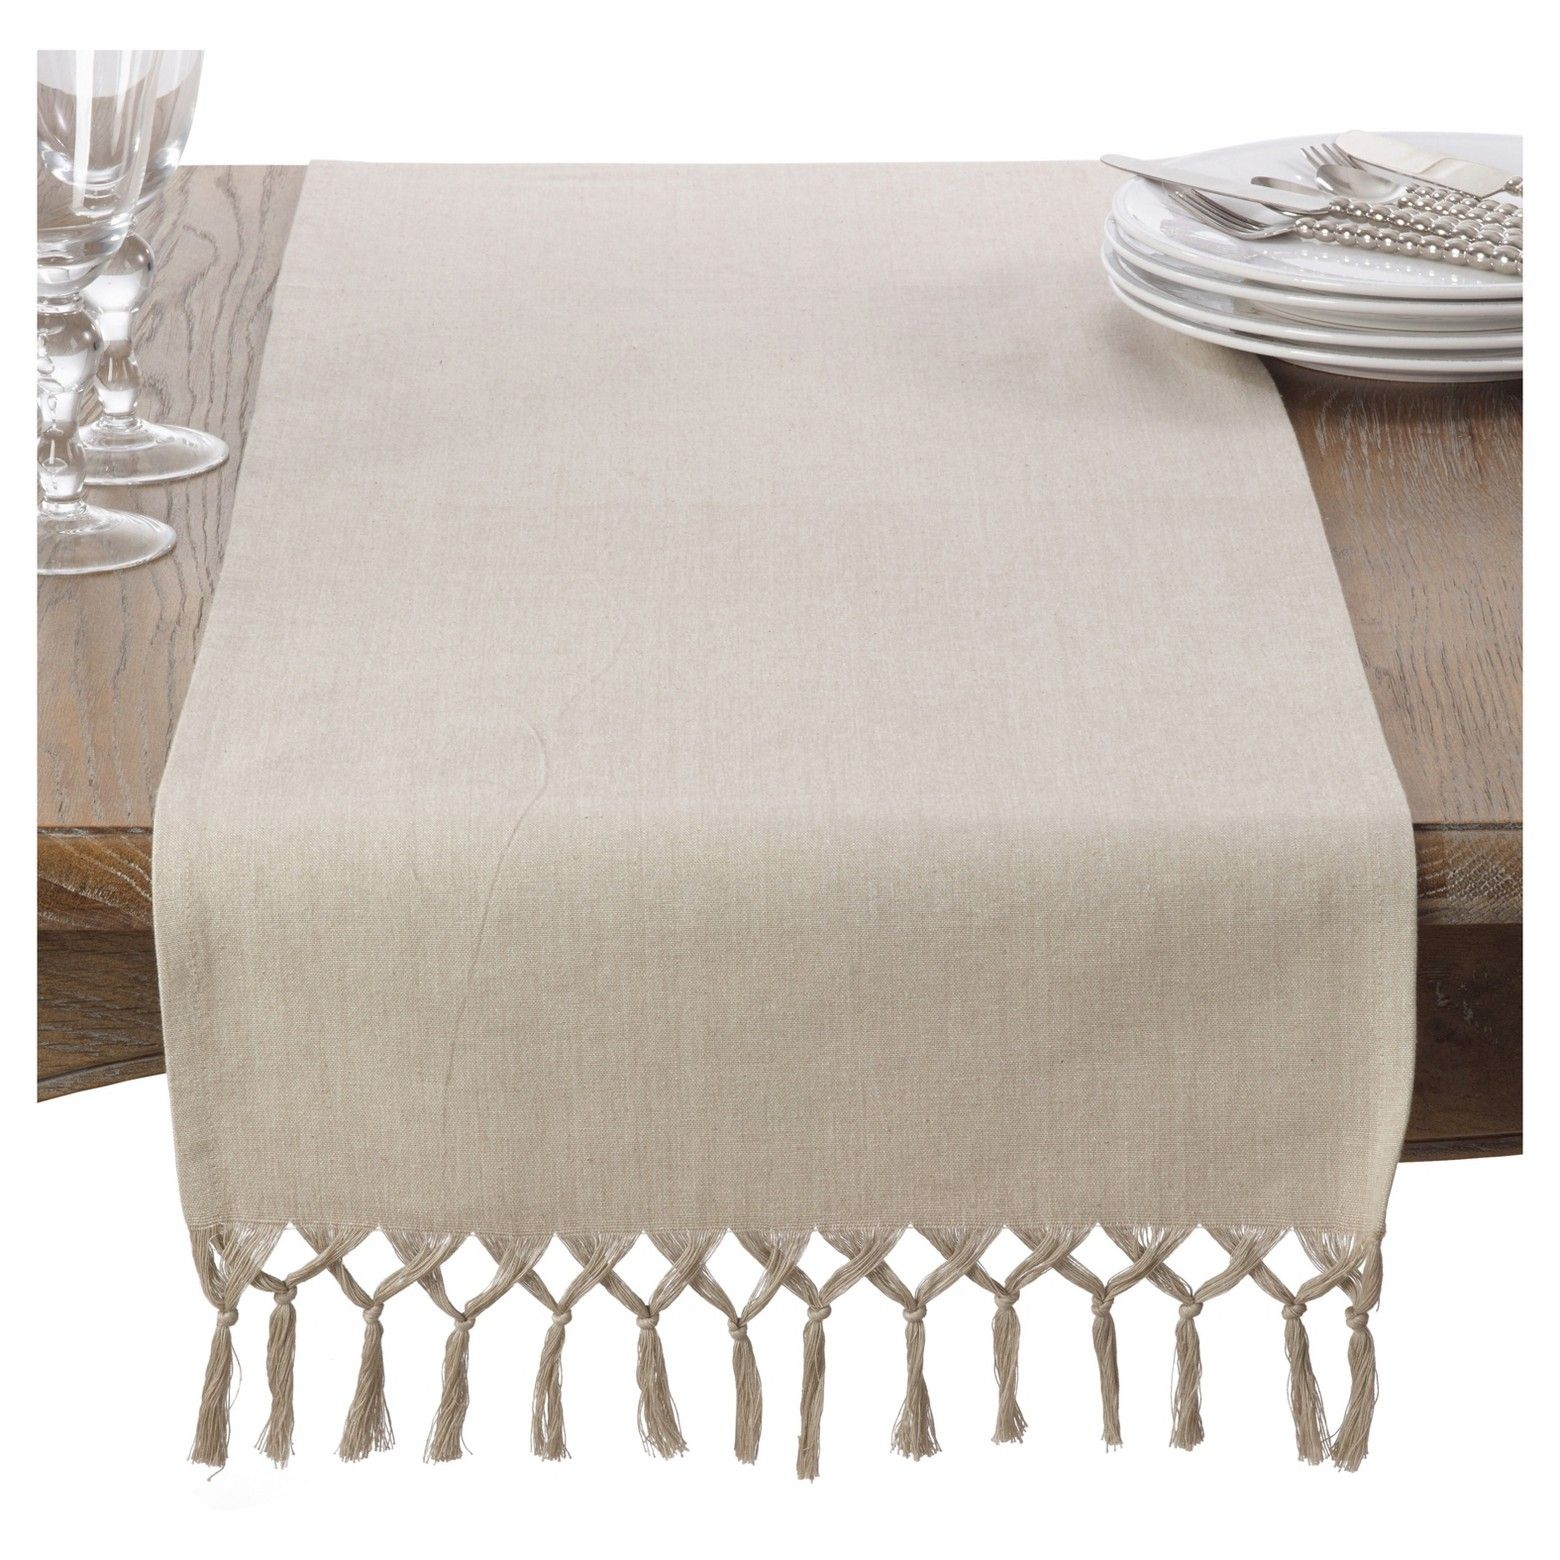 how to make a table runner with tassels